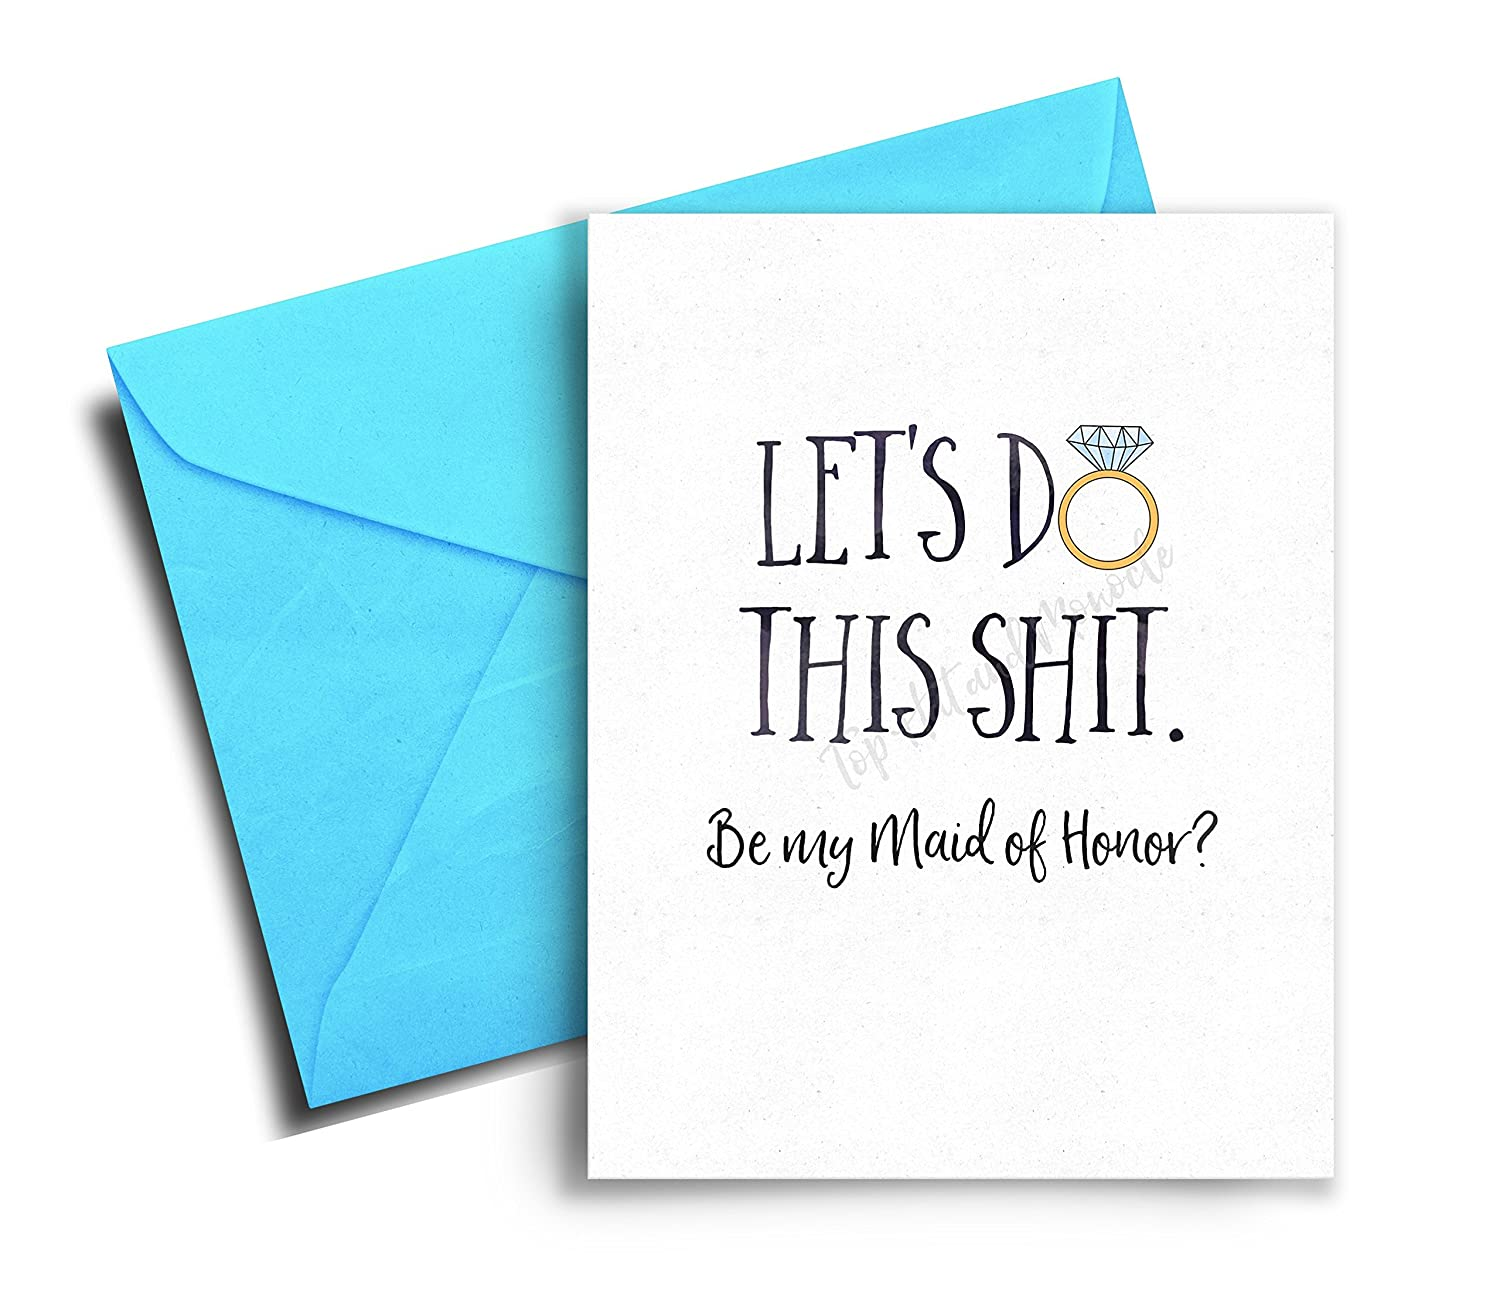 Will you be my Maid of Honor, Maid of Honor Card, Maid of Honor Proposal